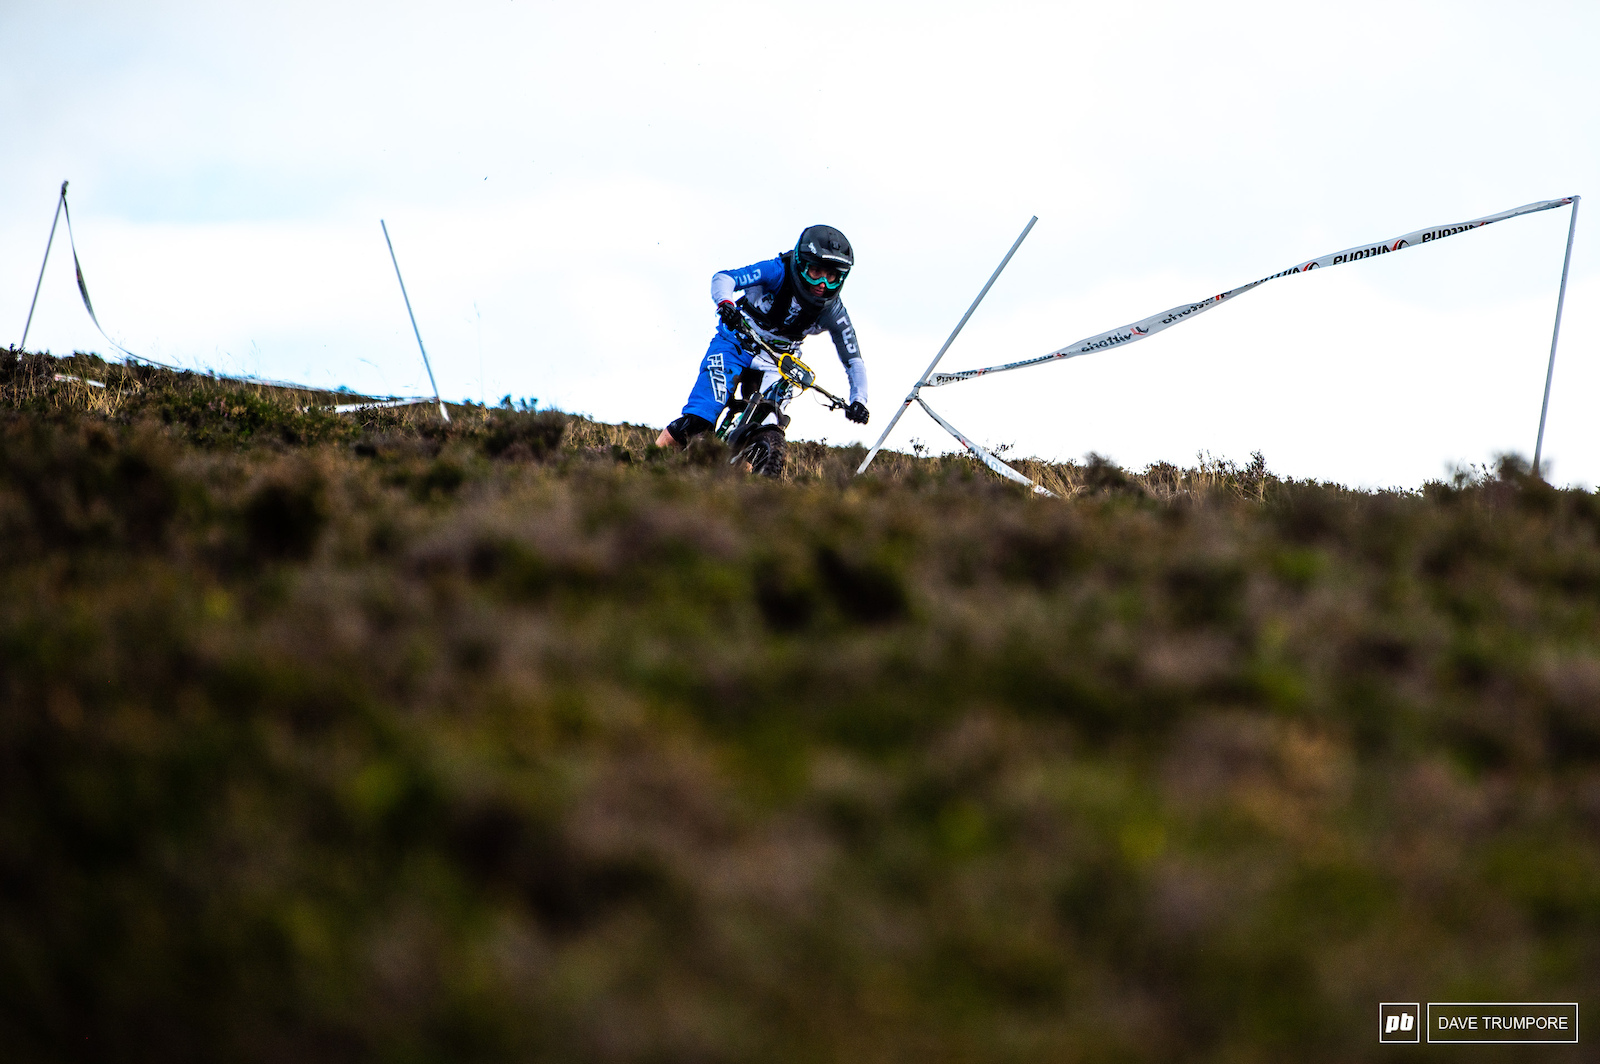 An off weekend for Melanie Pugin would see her do just enough to take home the overall title